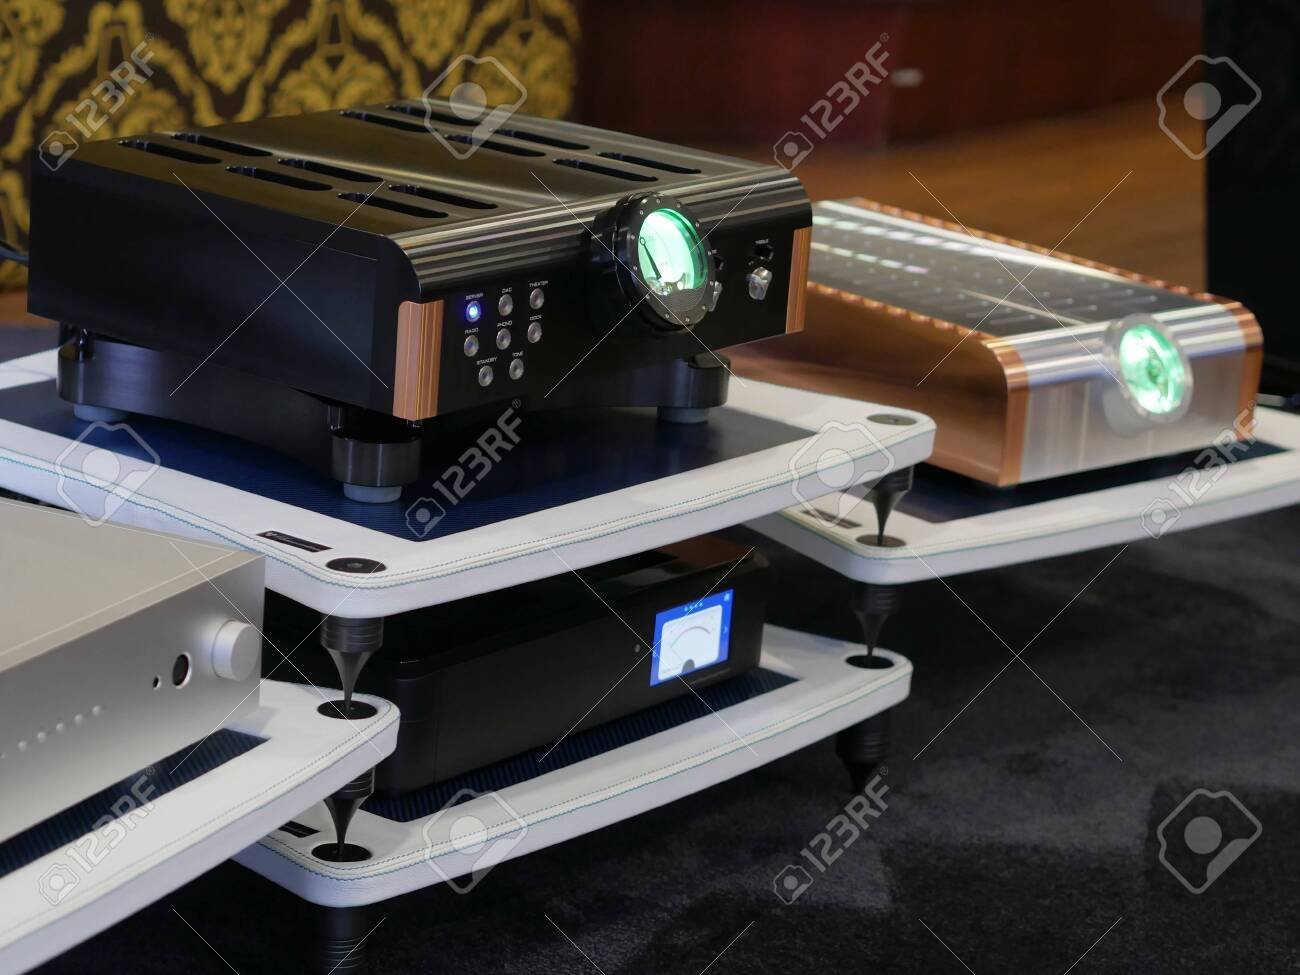 Audiofil HiFi tube amplifier. Equipment for listening to quality music. - 141279031